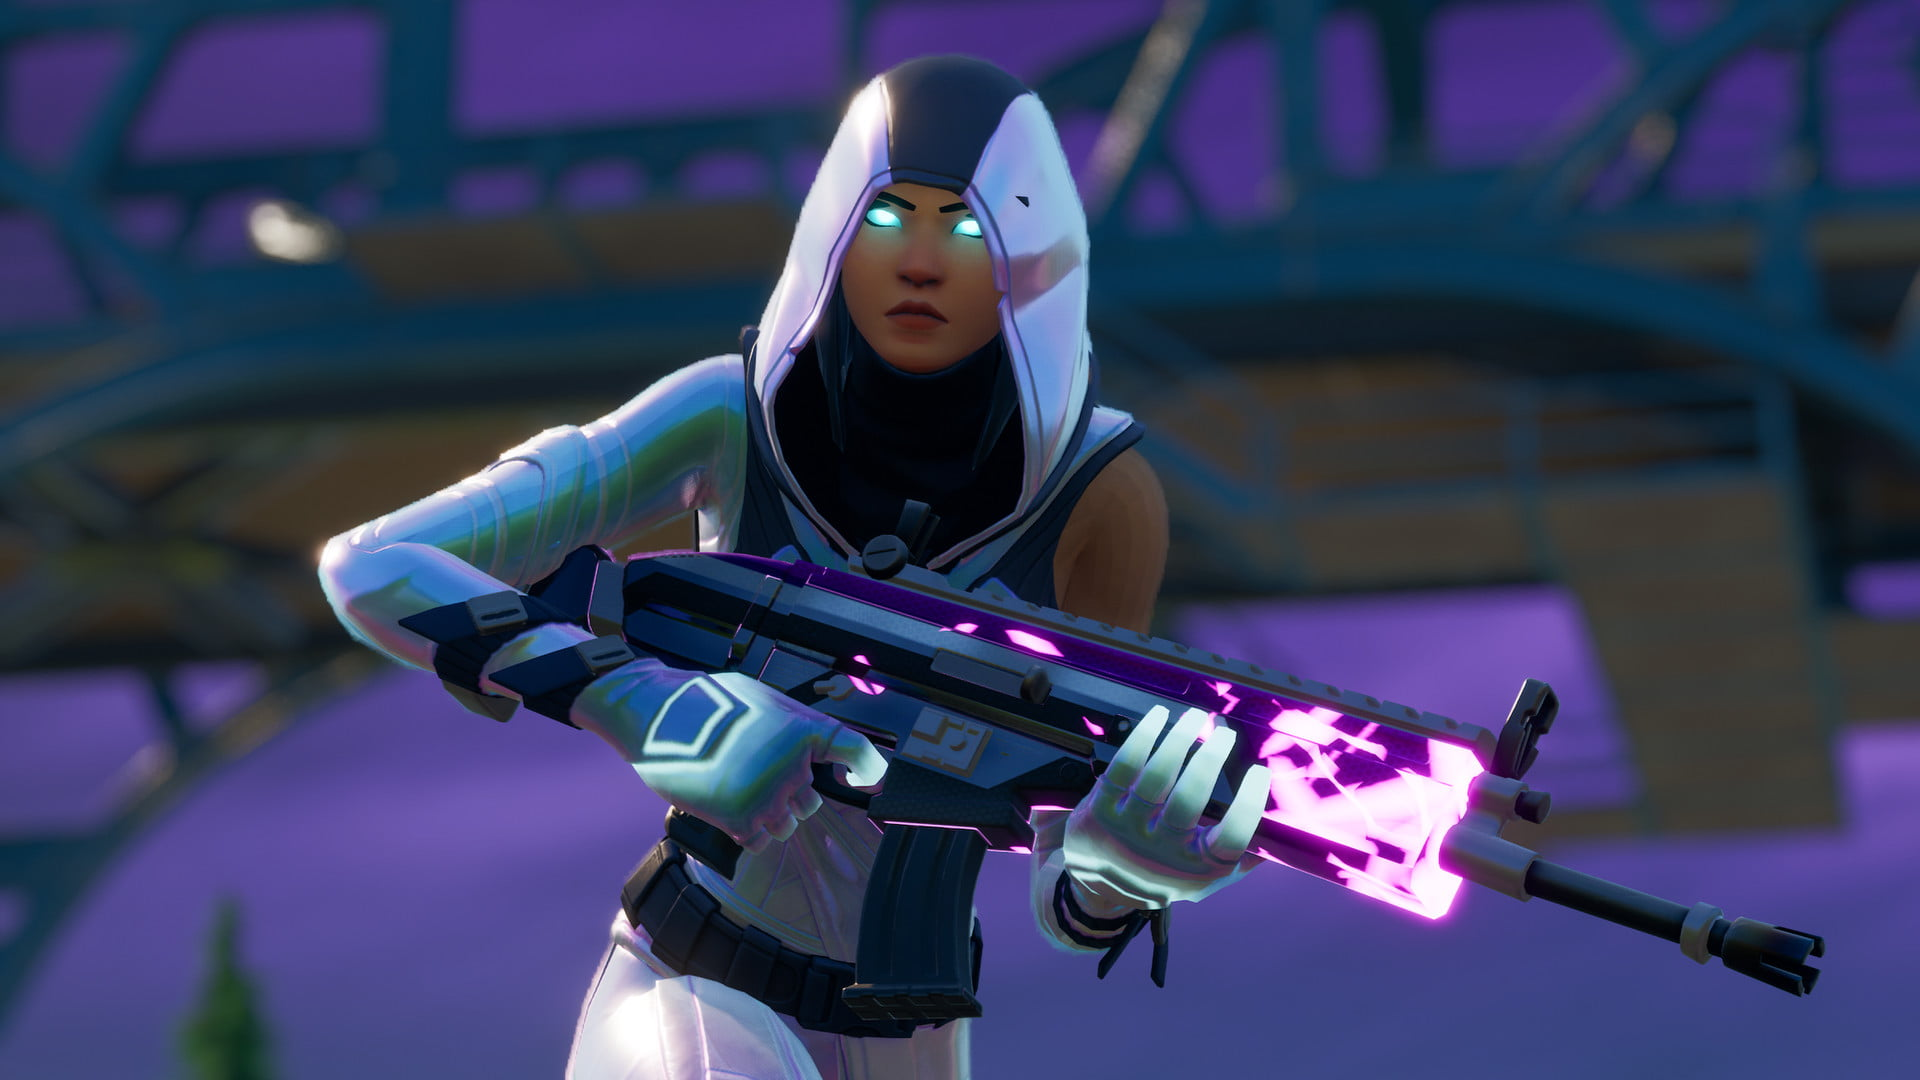 Next Fortnite Season Teased With Mysterious Phone Numbers Digital Trends